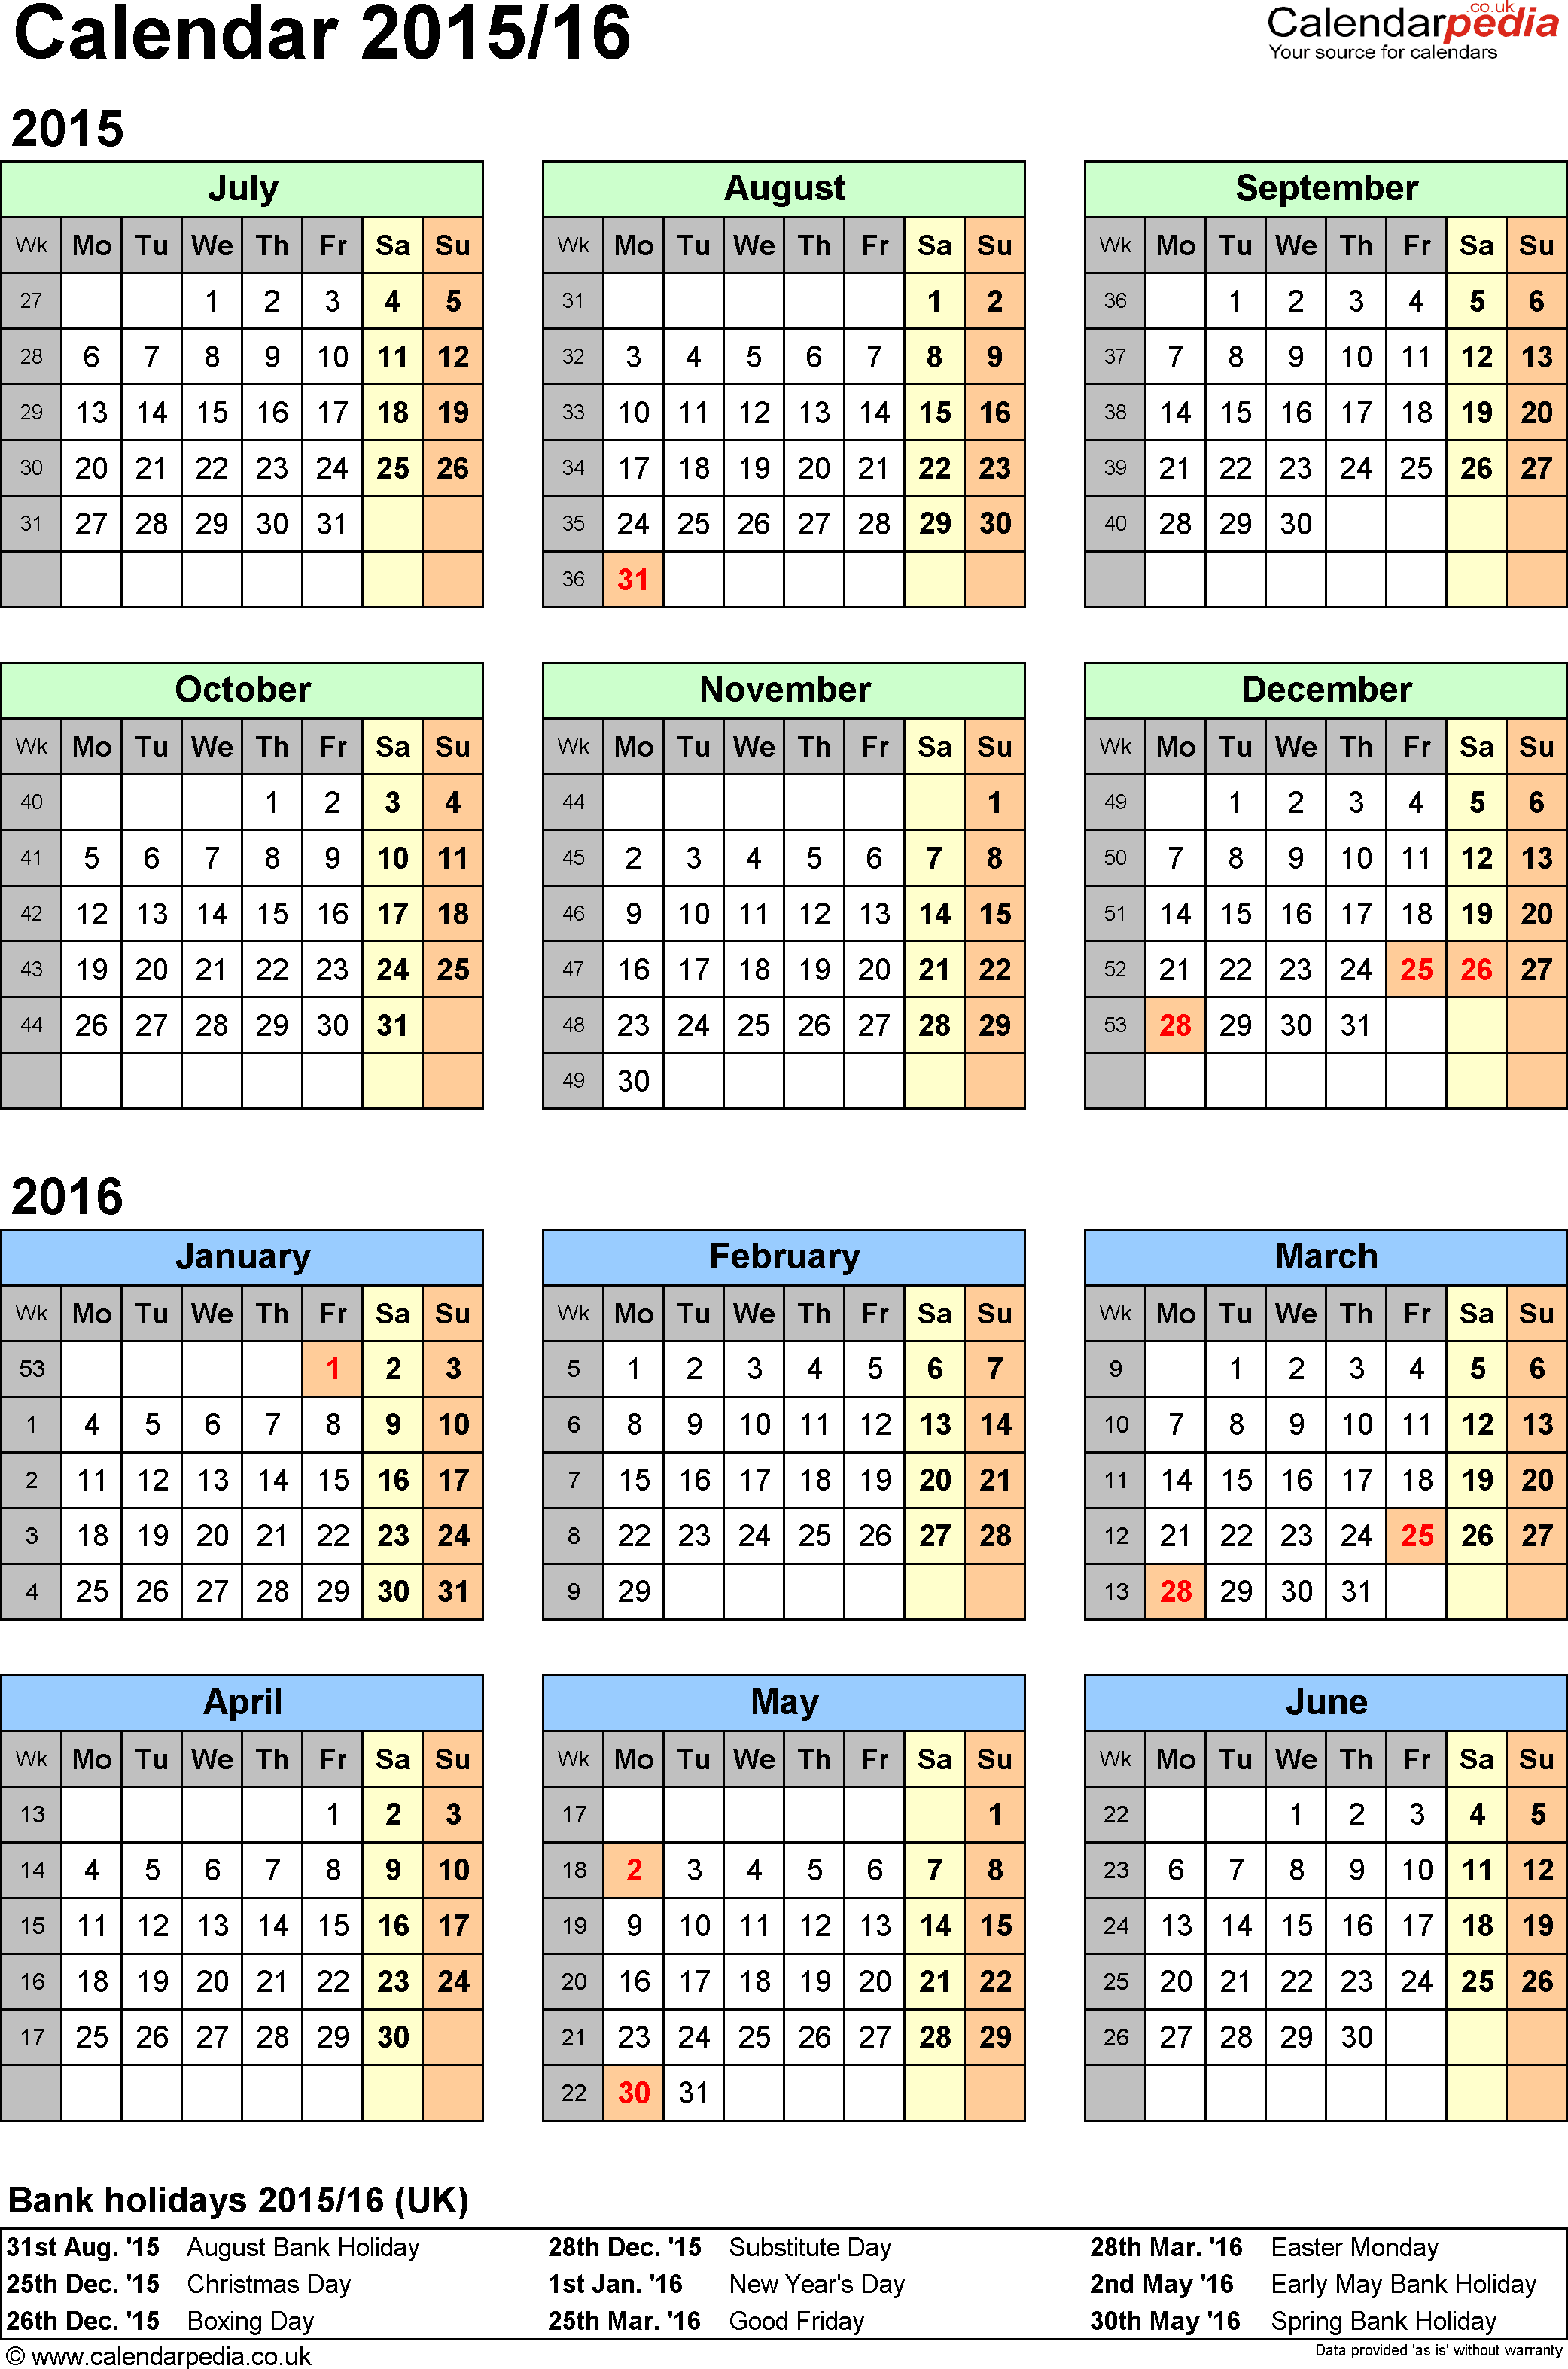 Split year calendars 2015/16 (July to June) for Word (UK version)